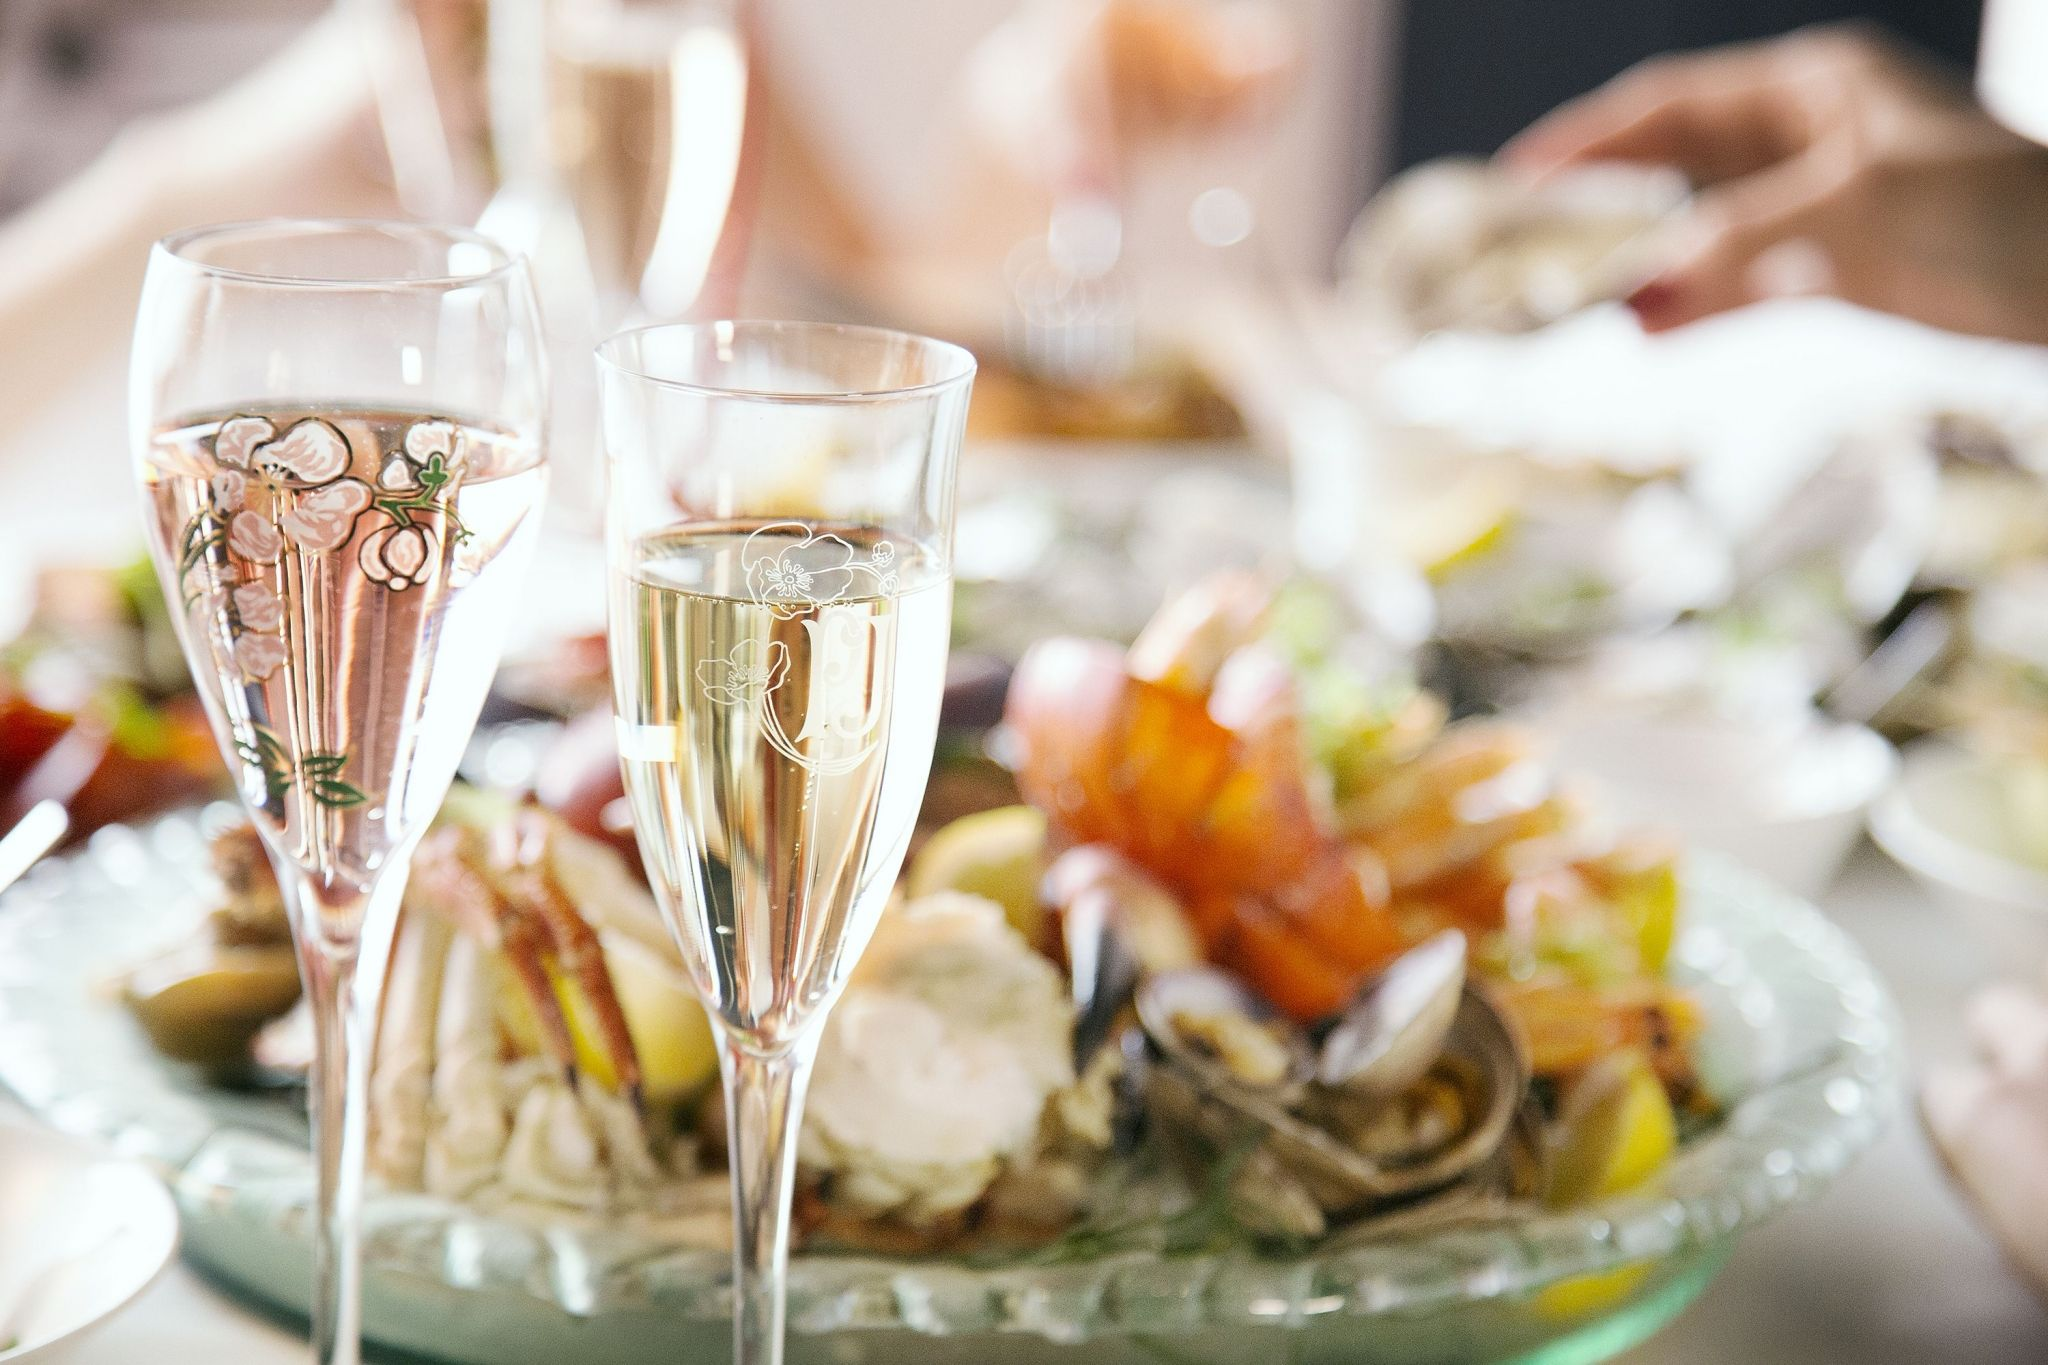 The Vivacious Sunday Champagne Brunch